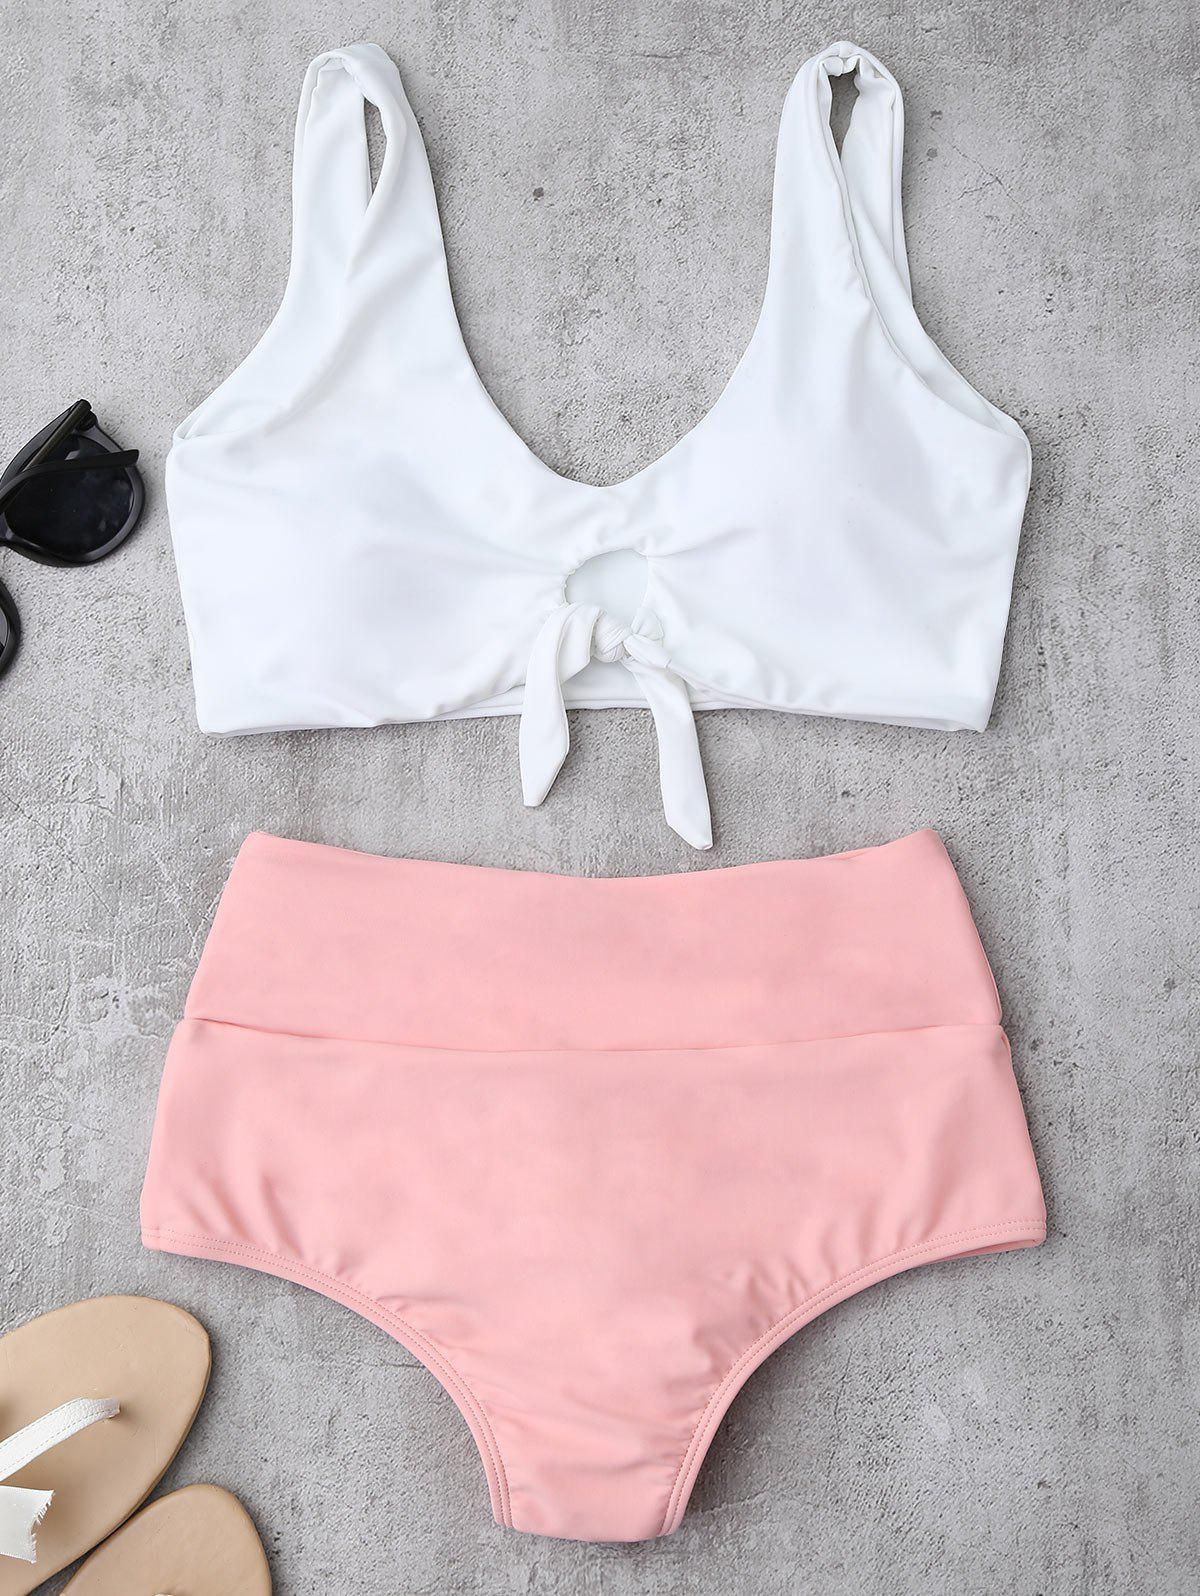 High Waisted Ruched Bikini SetWOMEN<br><br>Size: M; Color: PINK; Swimwear Type: Bikini; Gender: For Women; Material: Chinlon,Spandex; Bra Style: Padded; Support Type: Wire Free; Neckline: Straps; Pattern Type: Others; Waist: High Waisted; Elasticity: Elastic; Weight: 0.2200kg; Package Contents: 1 x Top  1 x Briefs;